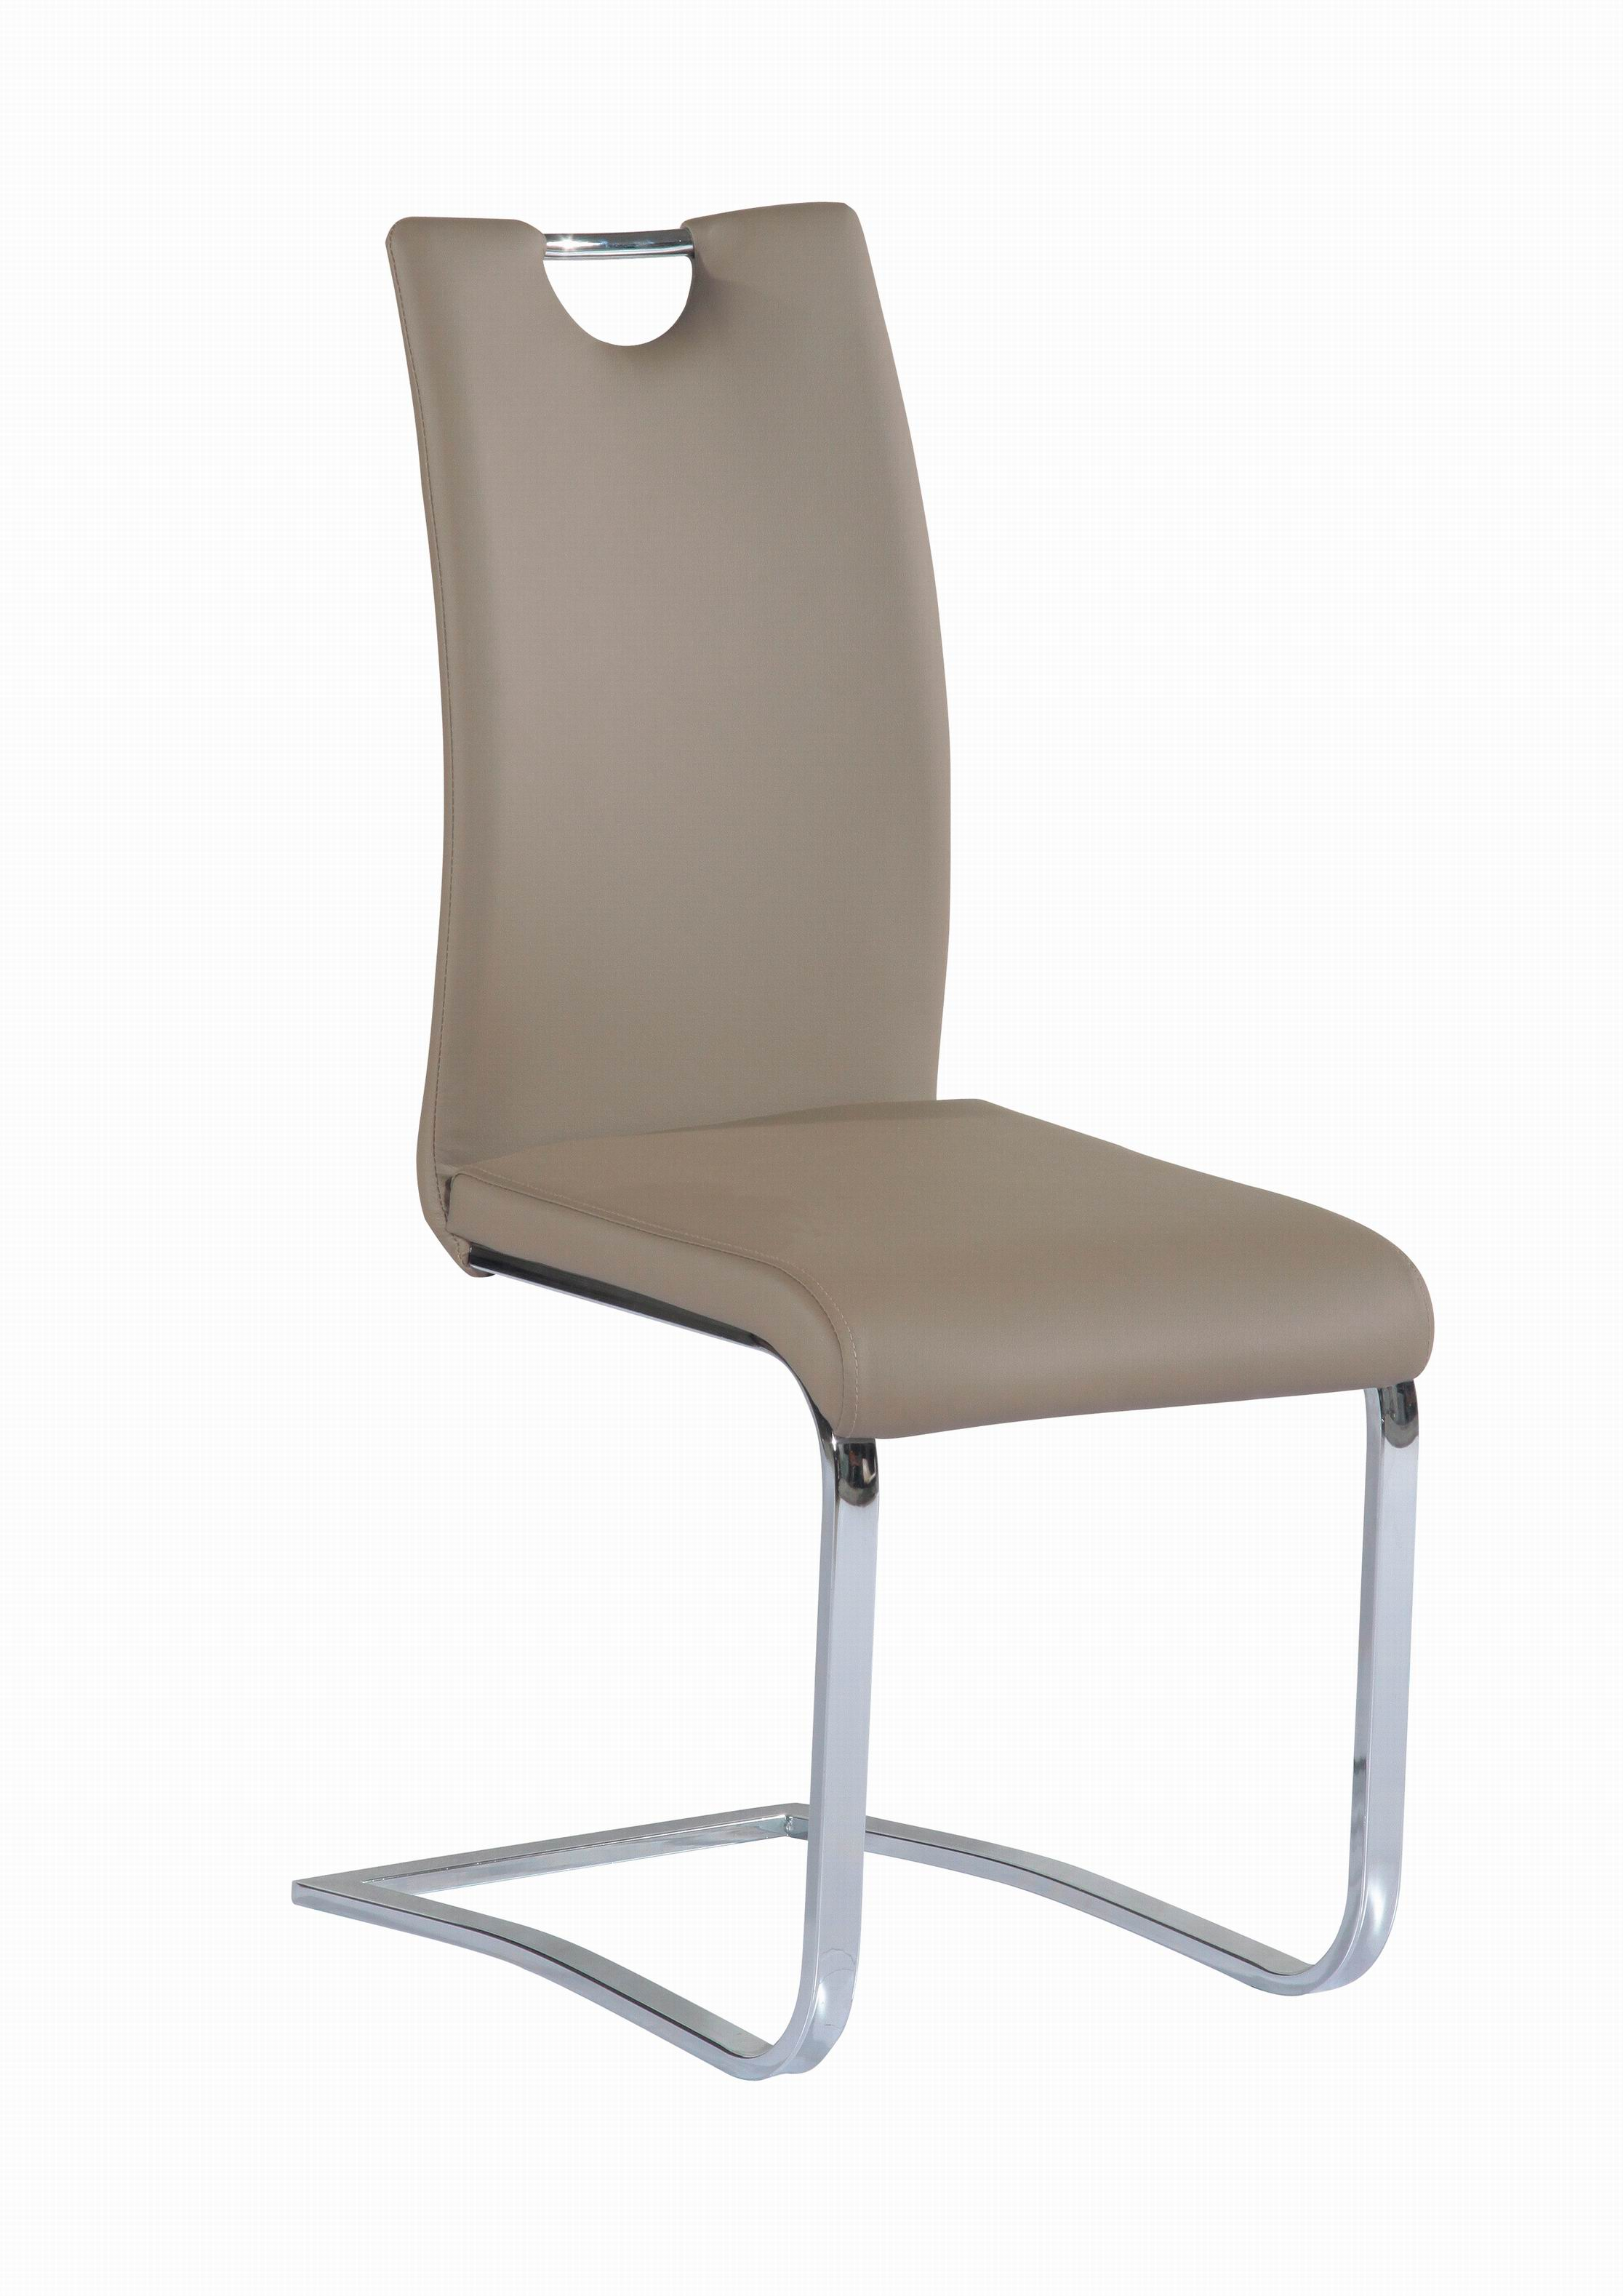 Taupe Upholstered Side Chair With Chrome Frame And Handle